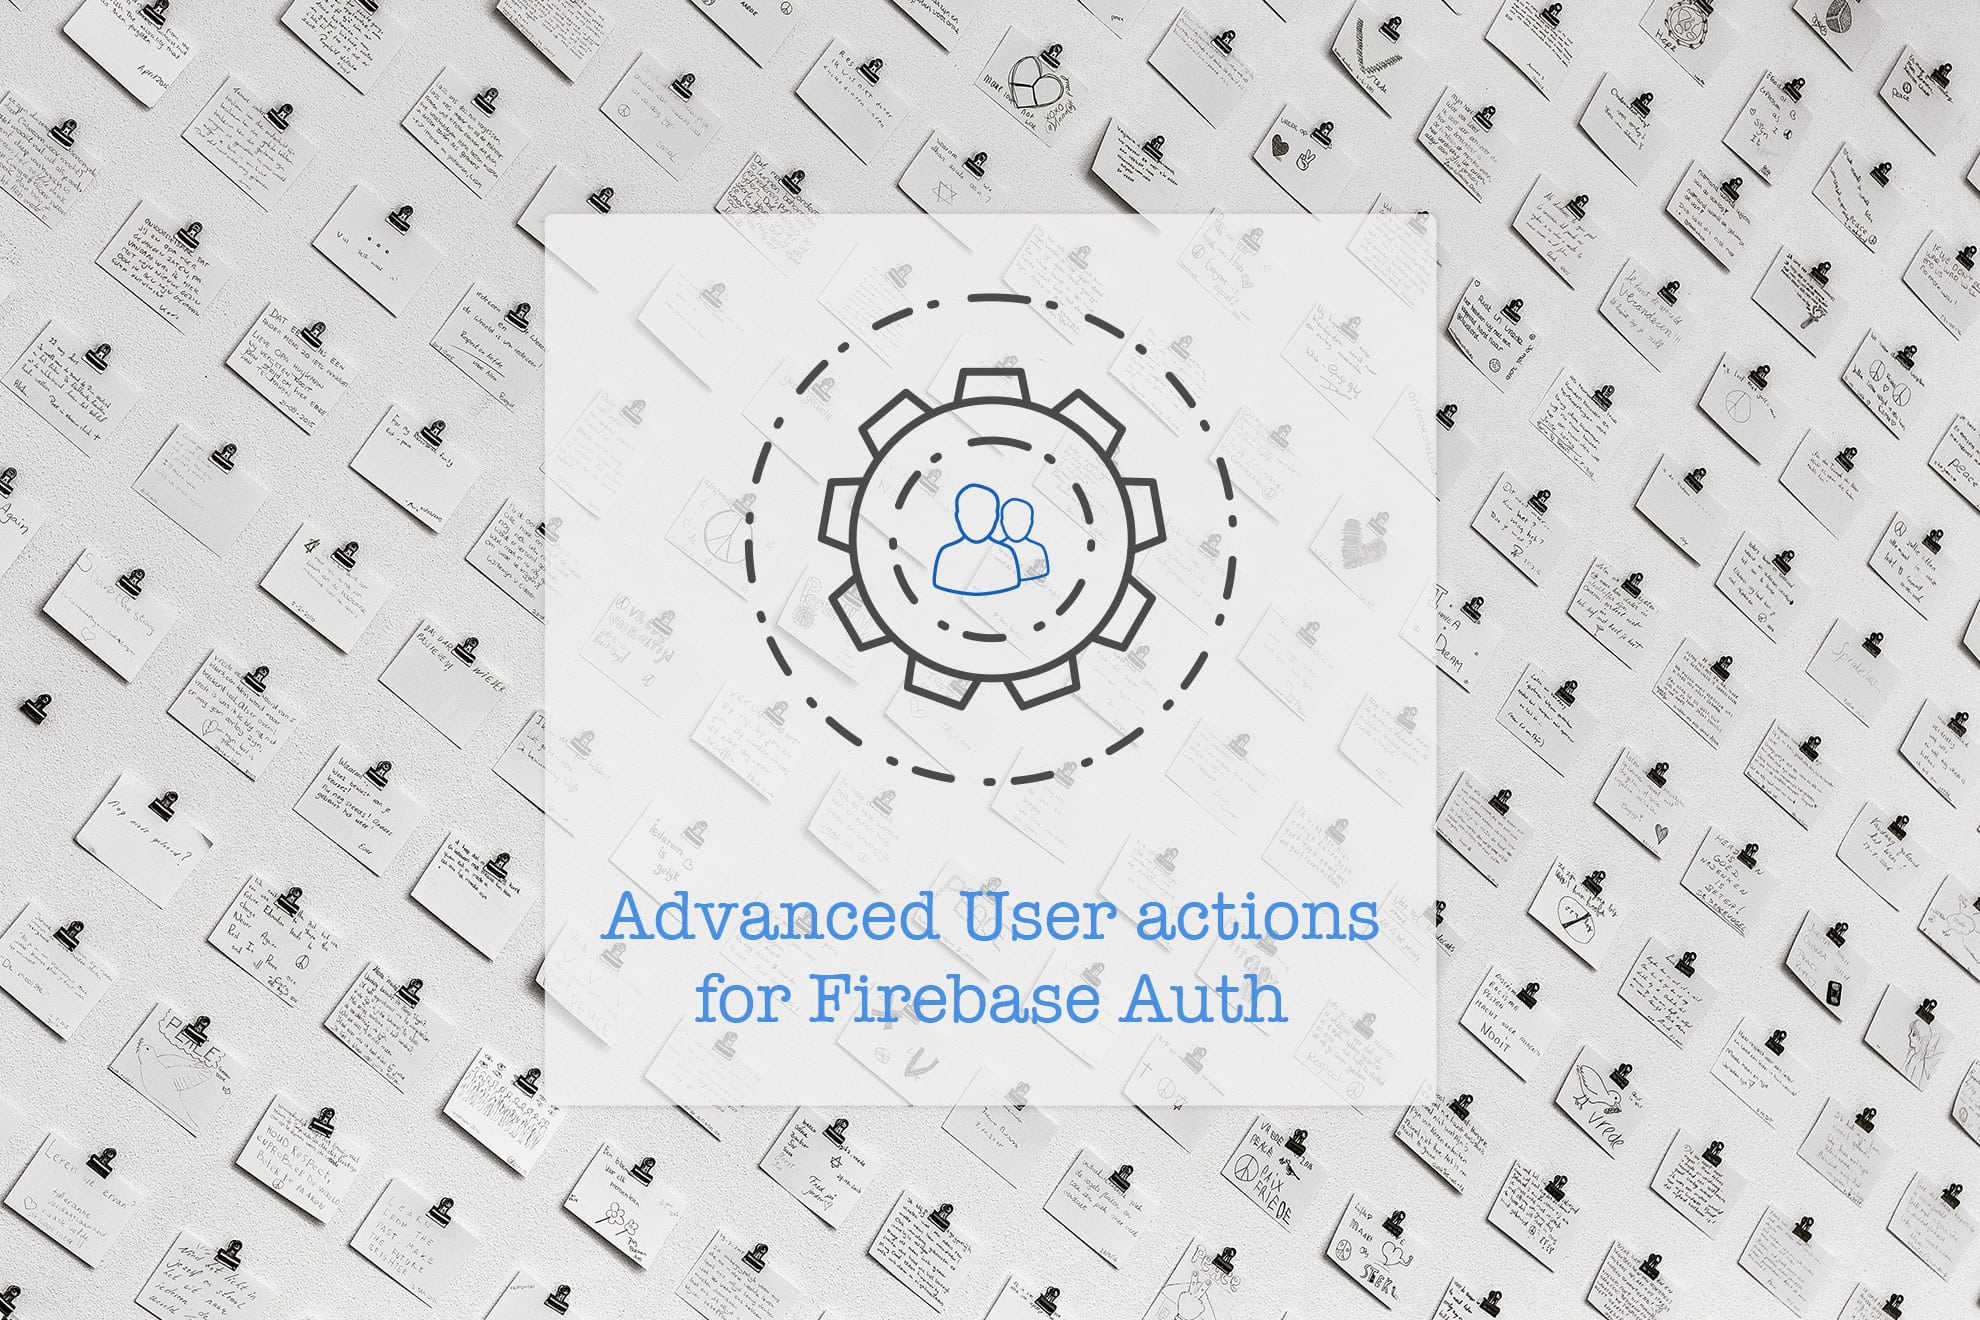 Advanced User actions for Firebase Login - Time to Hack